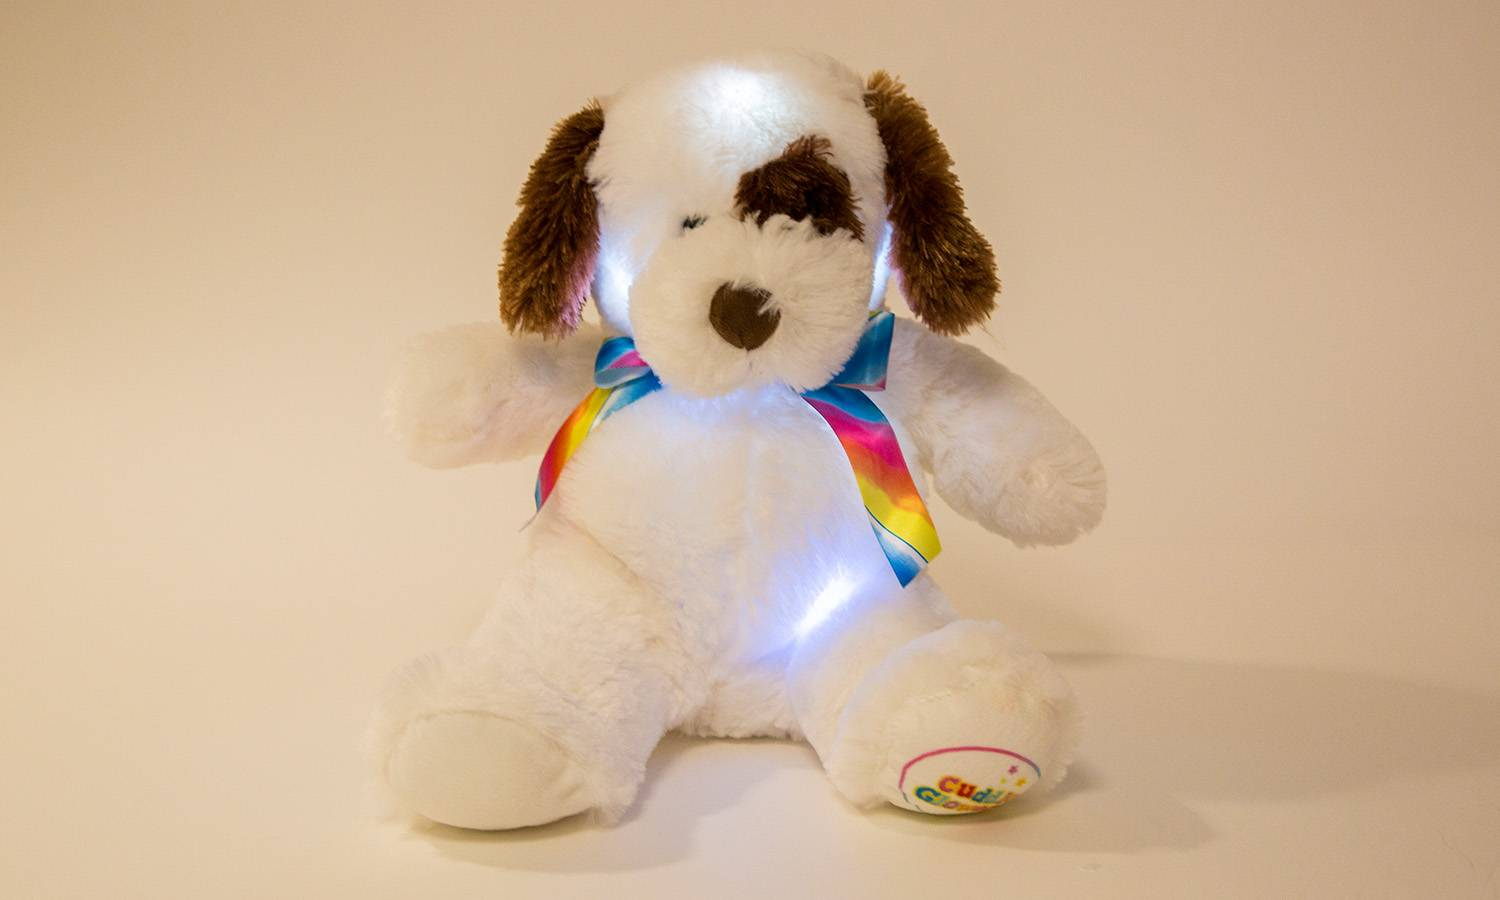 Groupon Goods One Glowing Puppy Cuddly Toy - Brown